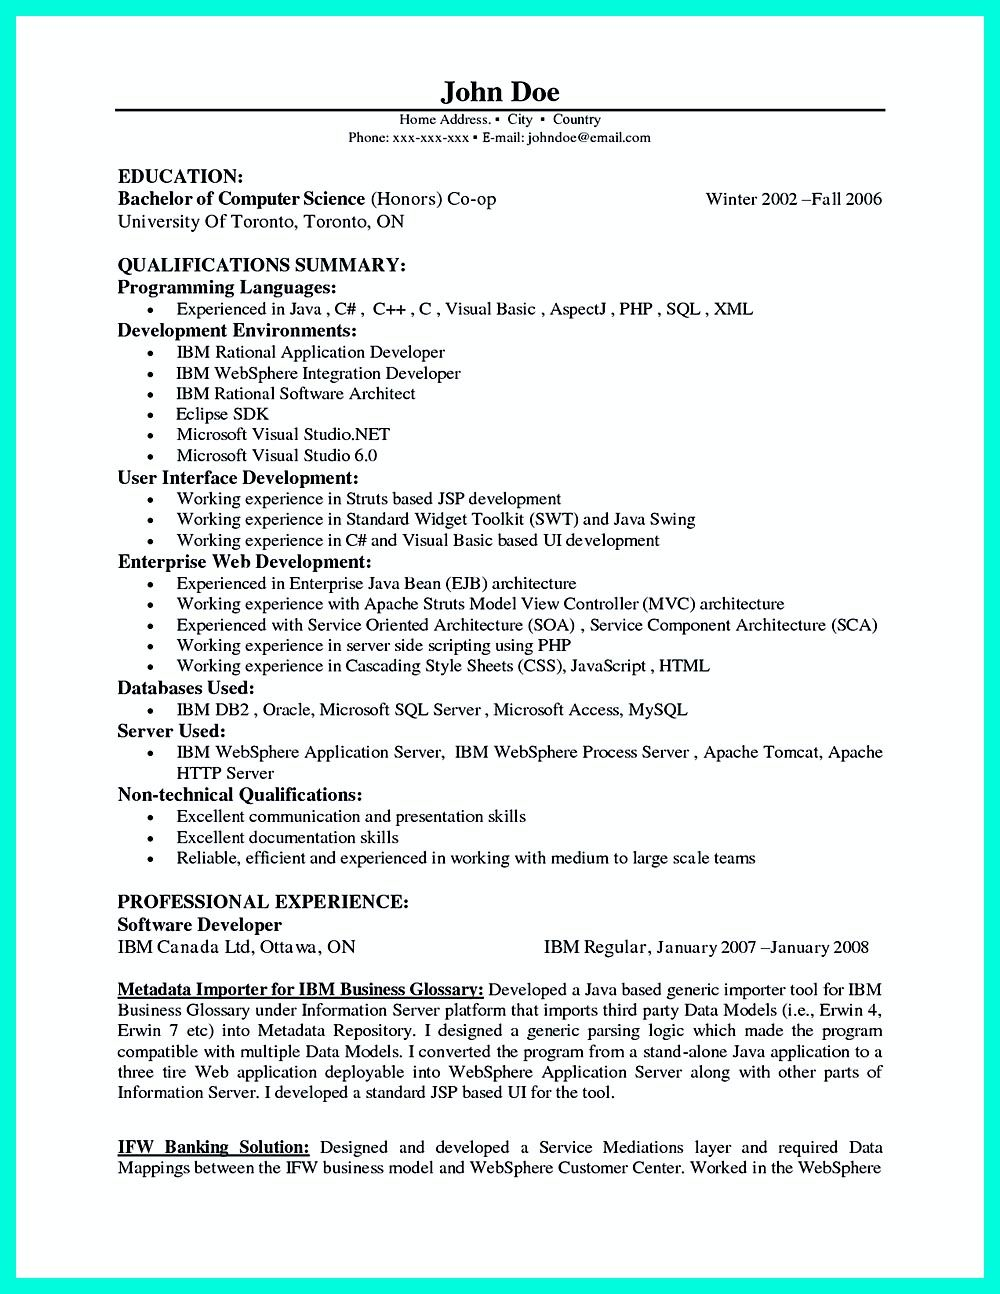 computer programmer resume has some paragraphs that focuses on the project management object oriented programming - Computer Programming Resume